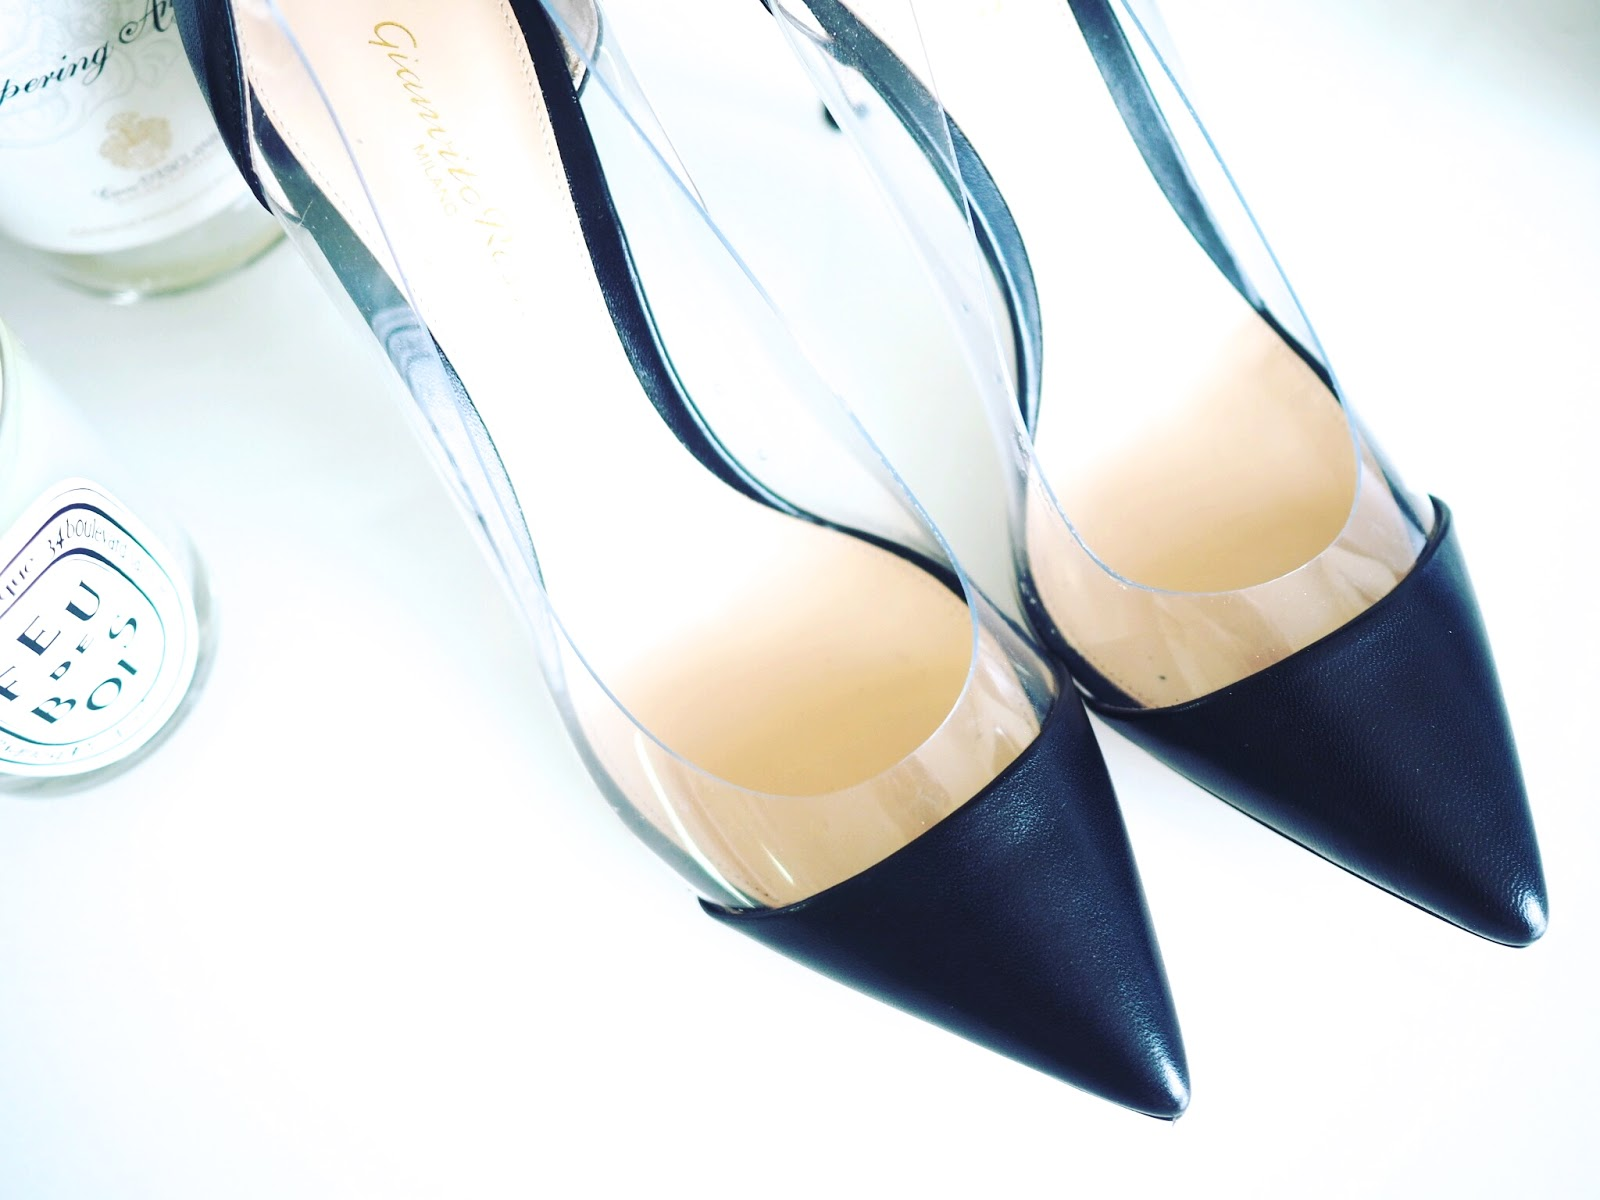 da9aea706b8d The Gianvito Rossi Plexi heel was a real impulse buy-one minute you re  talking to your assistant about them in the office